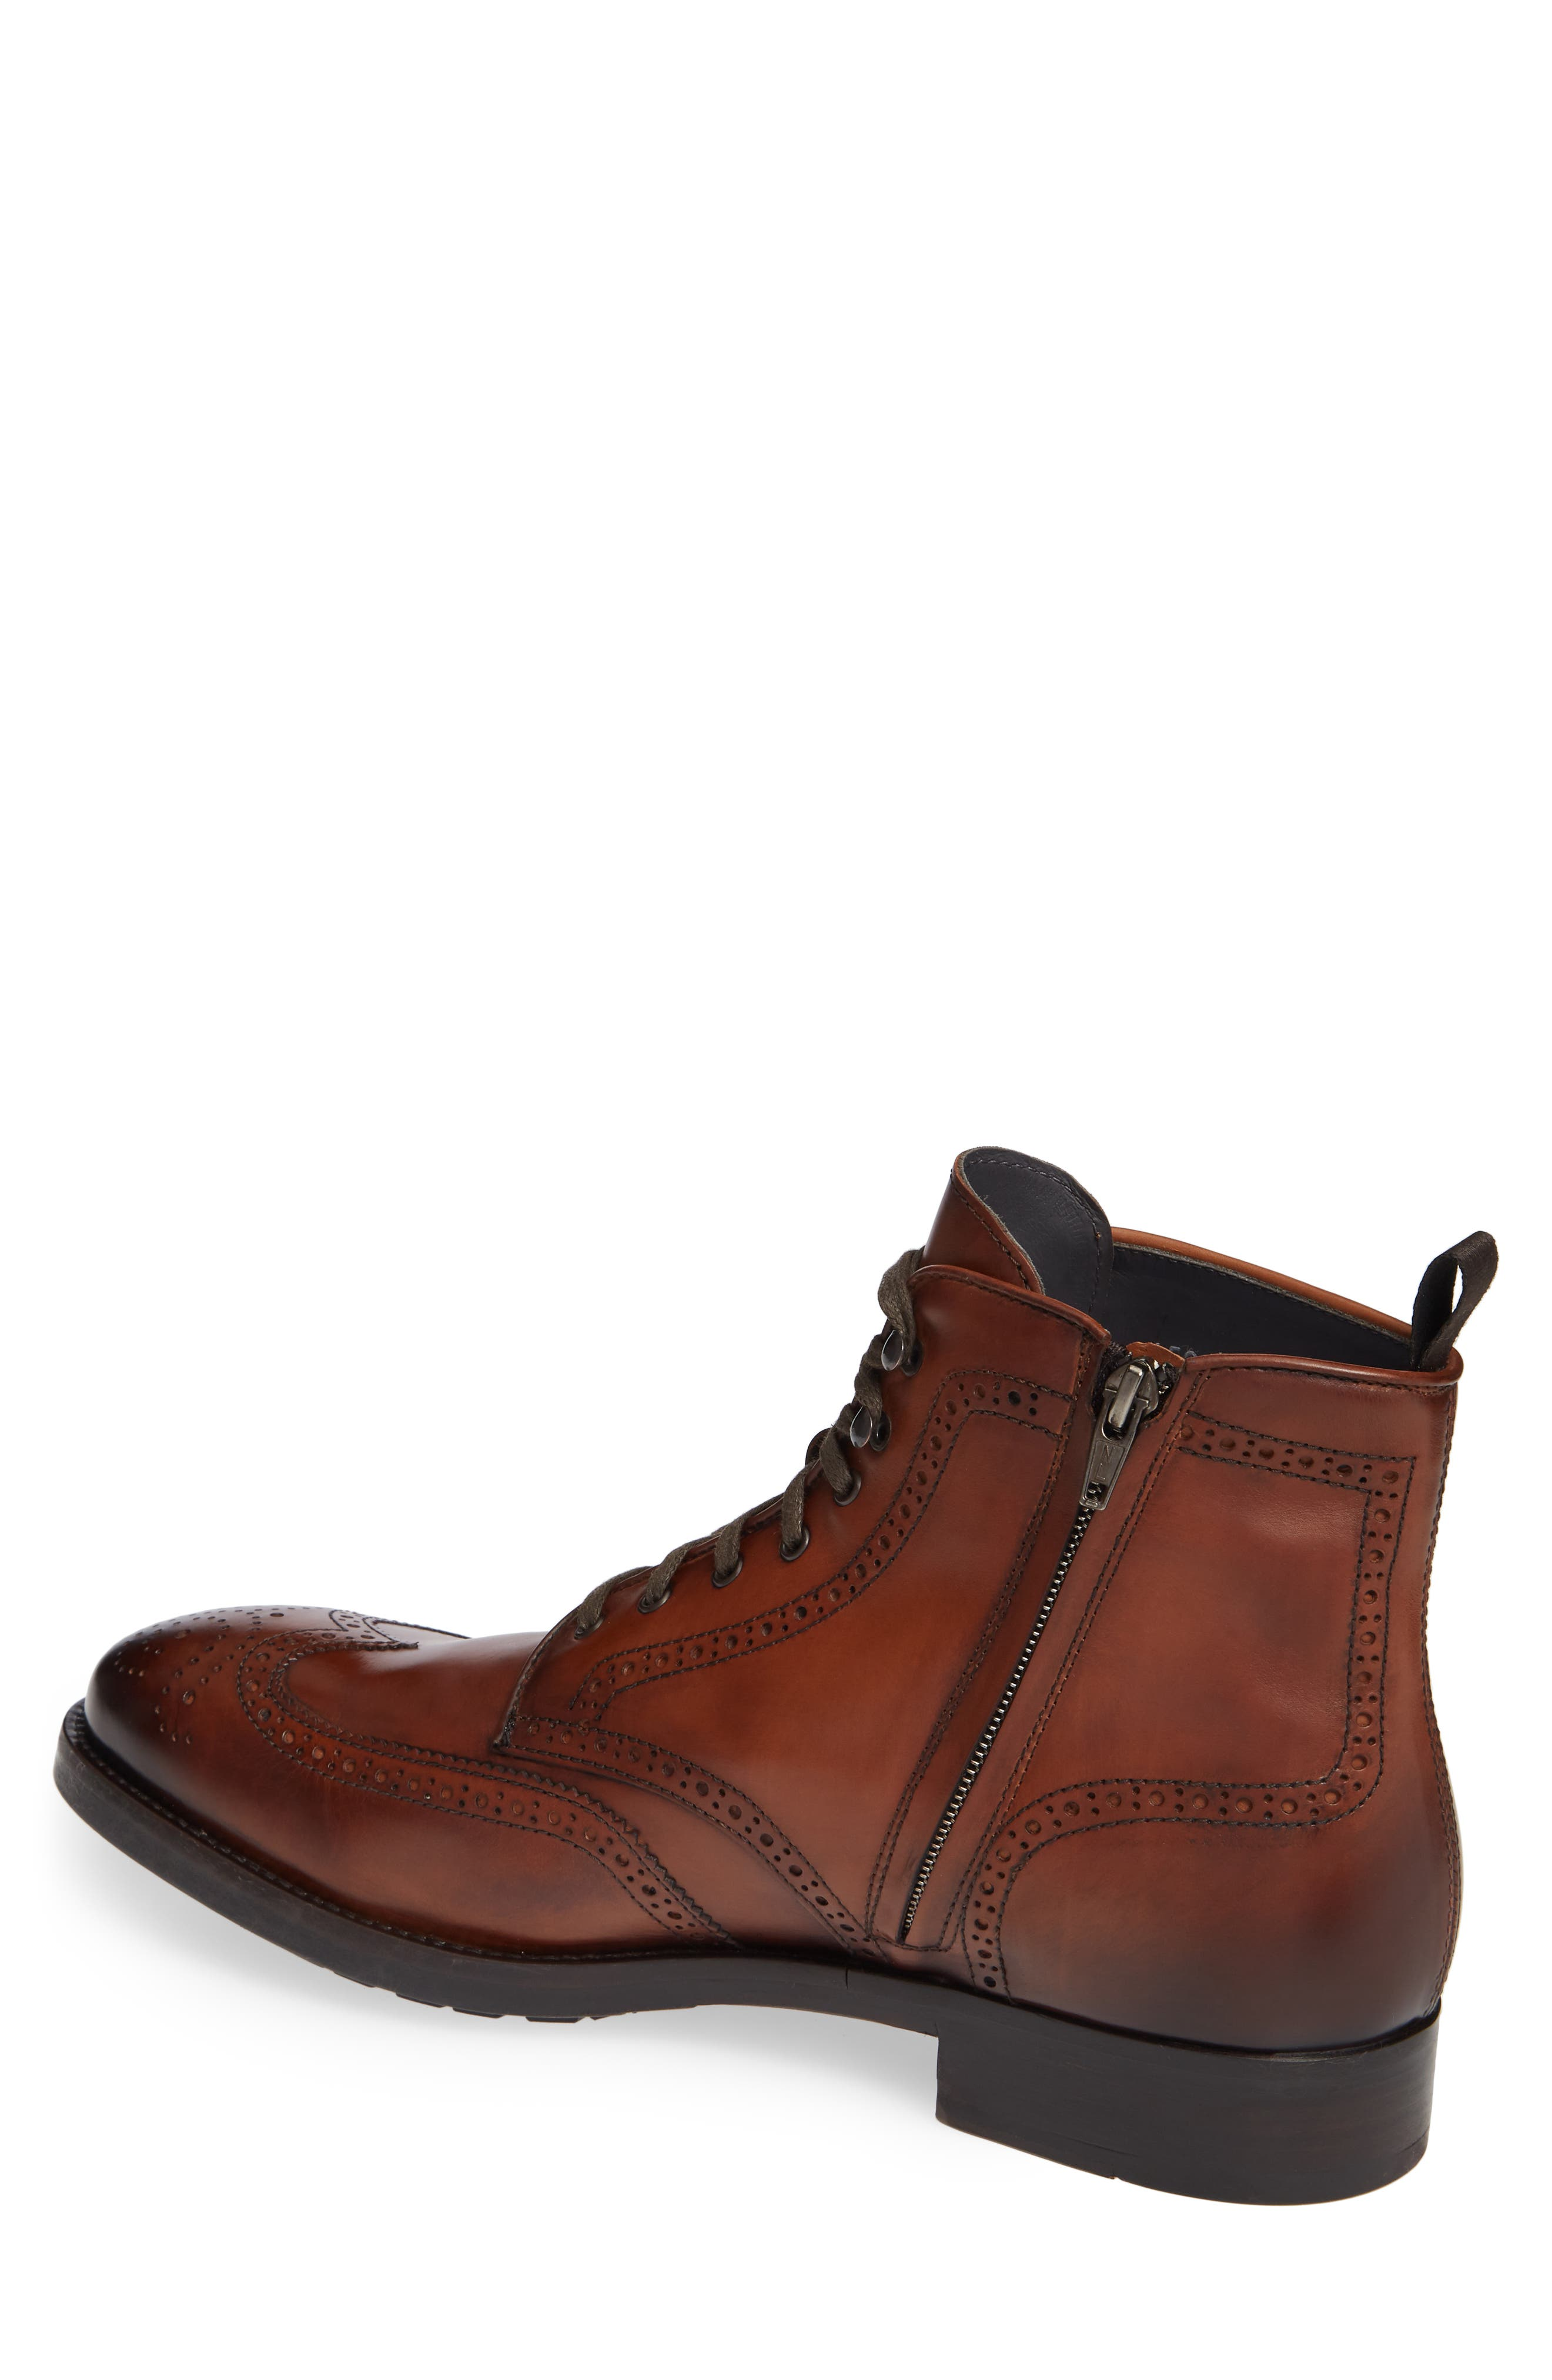 Auckland Wingtip Boot,                             Alternate thumbnail 2, color,                             BROWN LEATHER